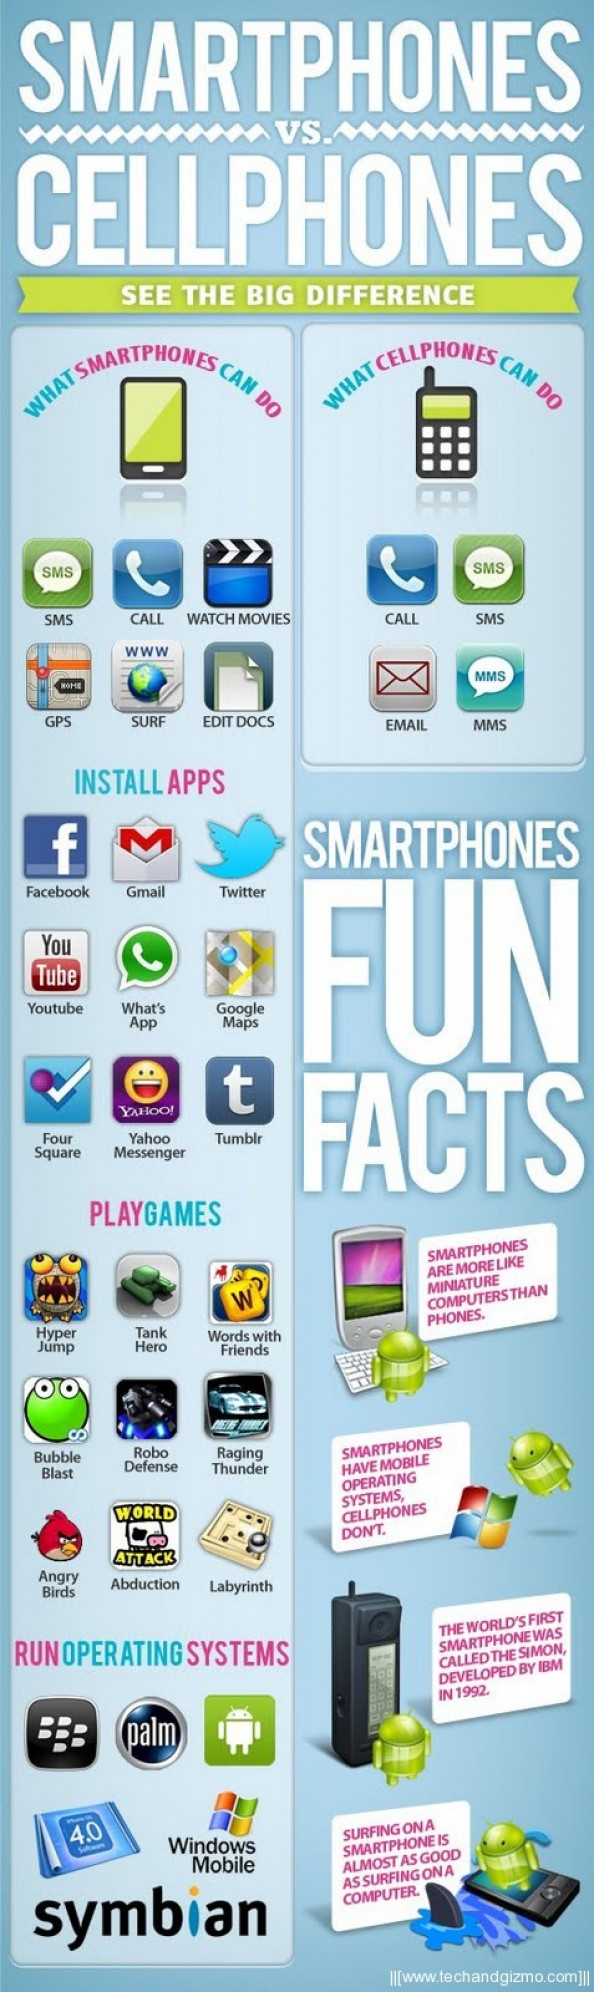 Cellphones vs. Smartphones Infographic